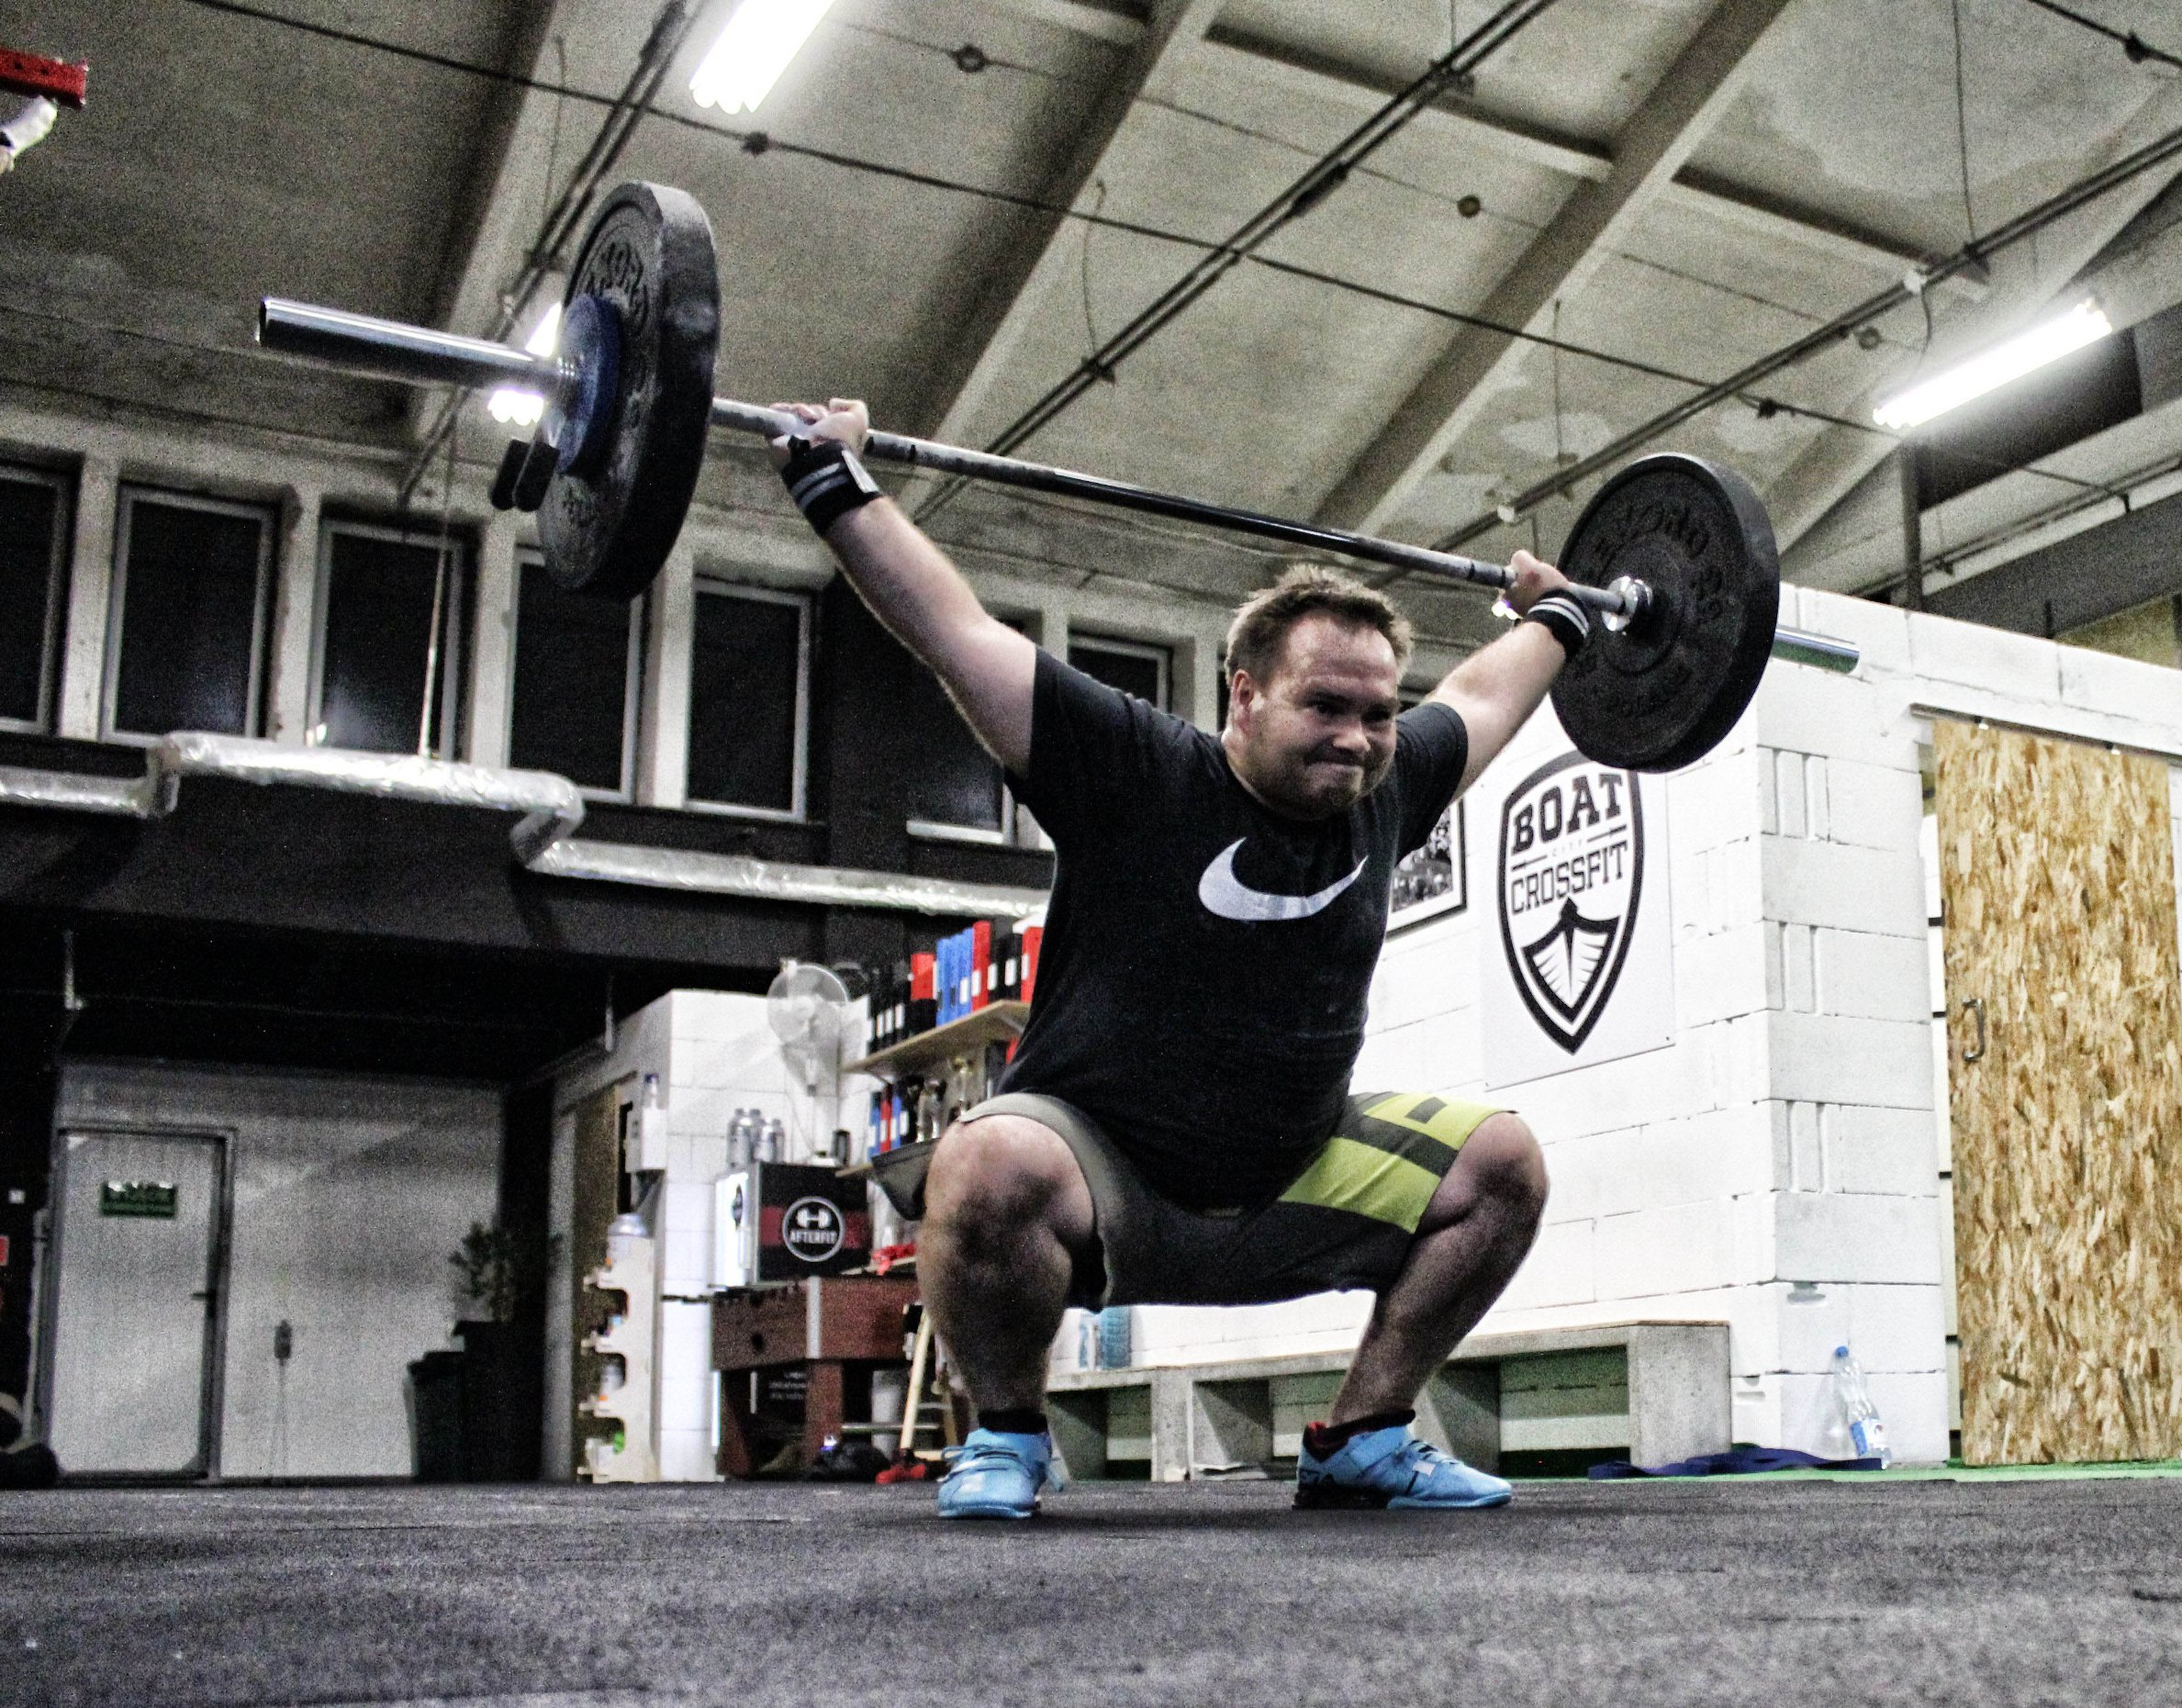 boat-city-crossfit-8